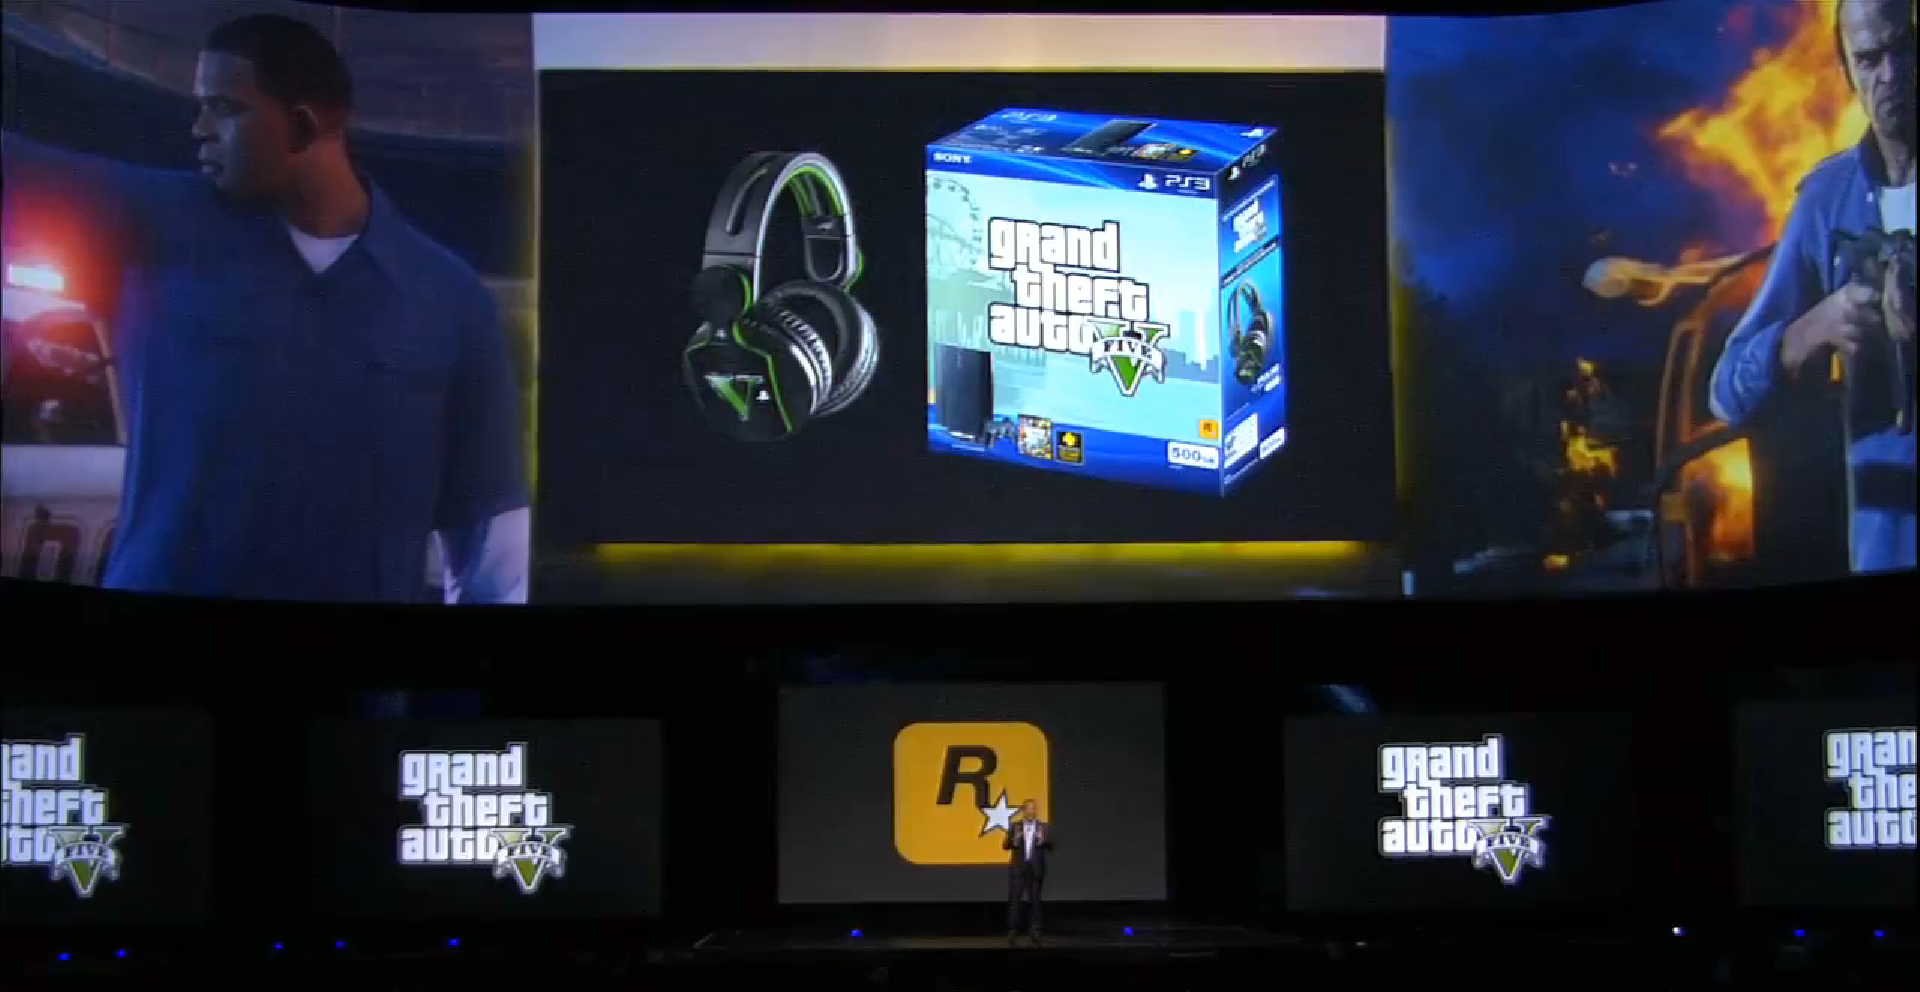 $300 Grand Theft Auto V-branded PlayStation 3 is due out this year